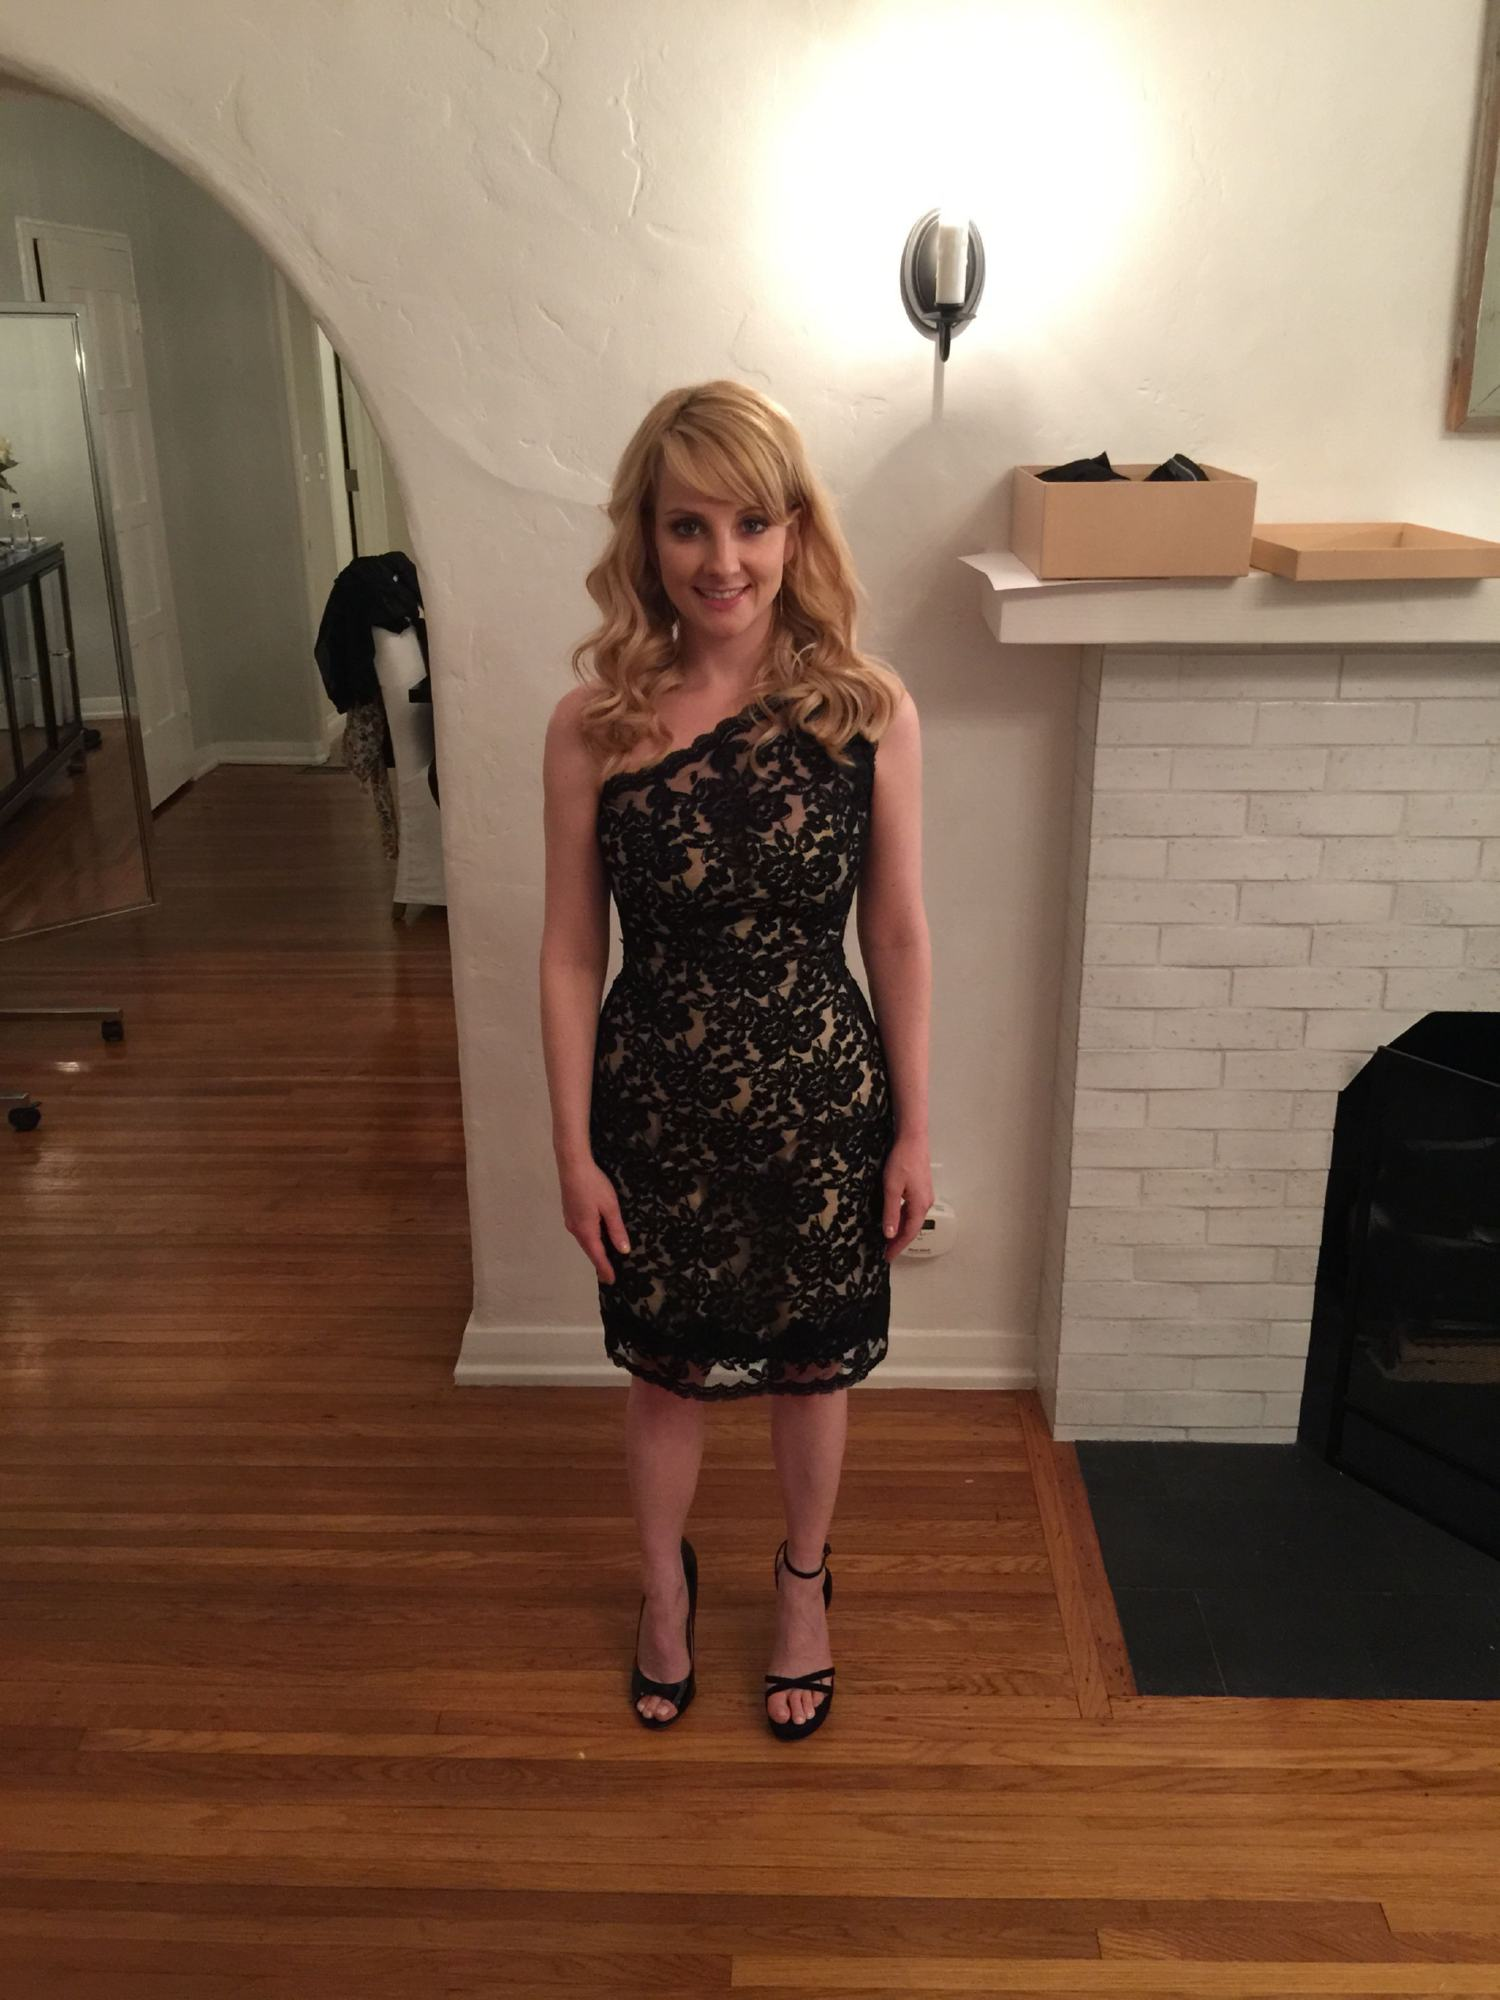 Melissa Rauch New Leaked Sexy Thefappening Photos 2019